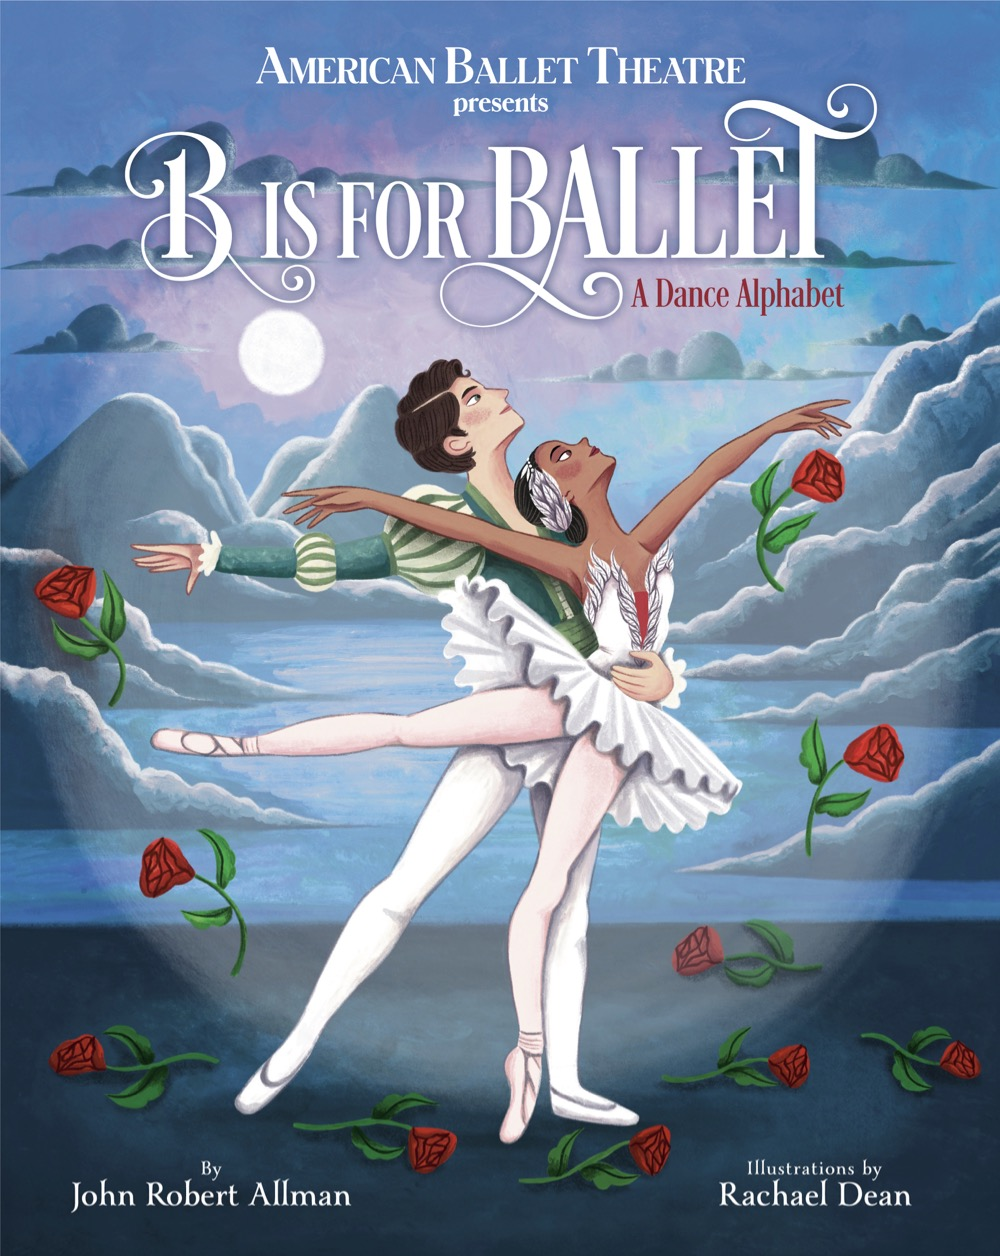 ABT Presents B Is For Ballet Book Cover